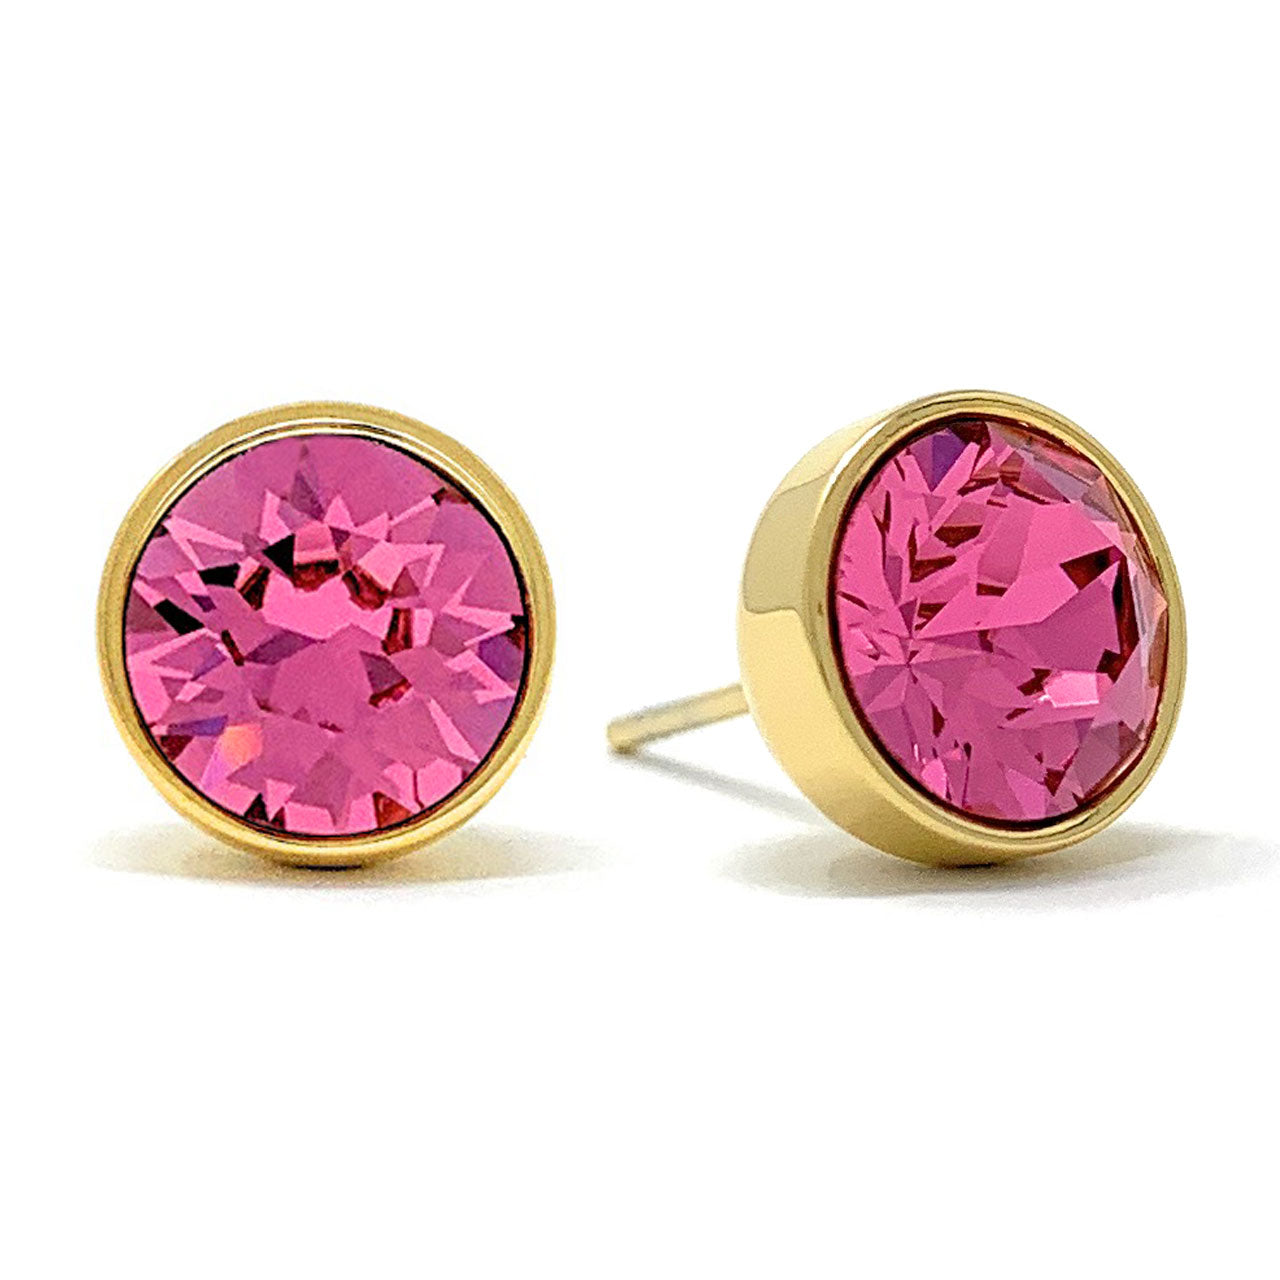 Harley Stud Earrings with Pink Rose Round Crystals from Swarovski Gold Plated - Ed Heart